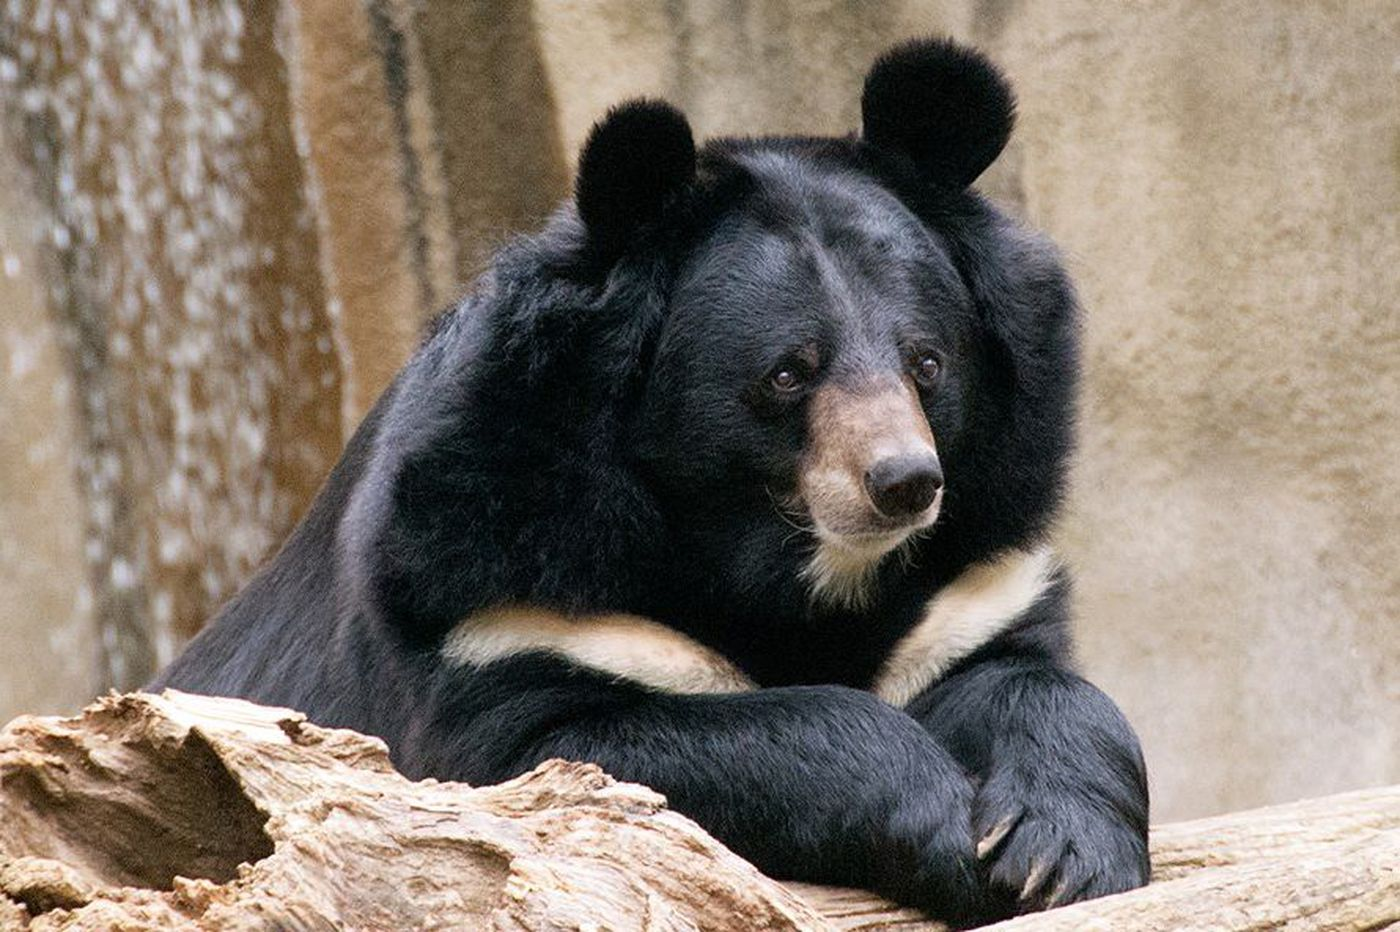 Philadelphia Zoo's Asian black bear dies